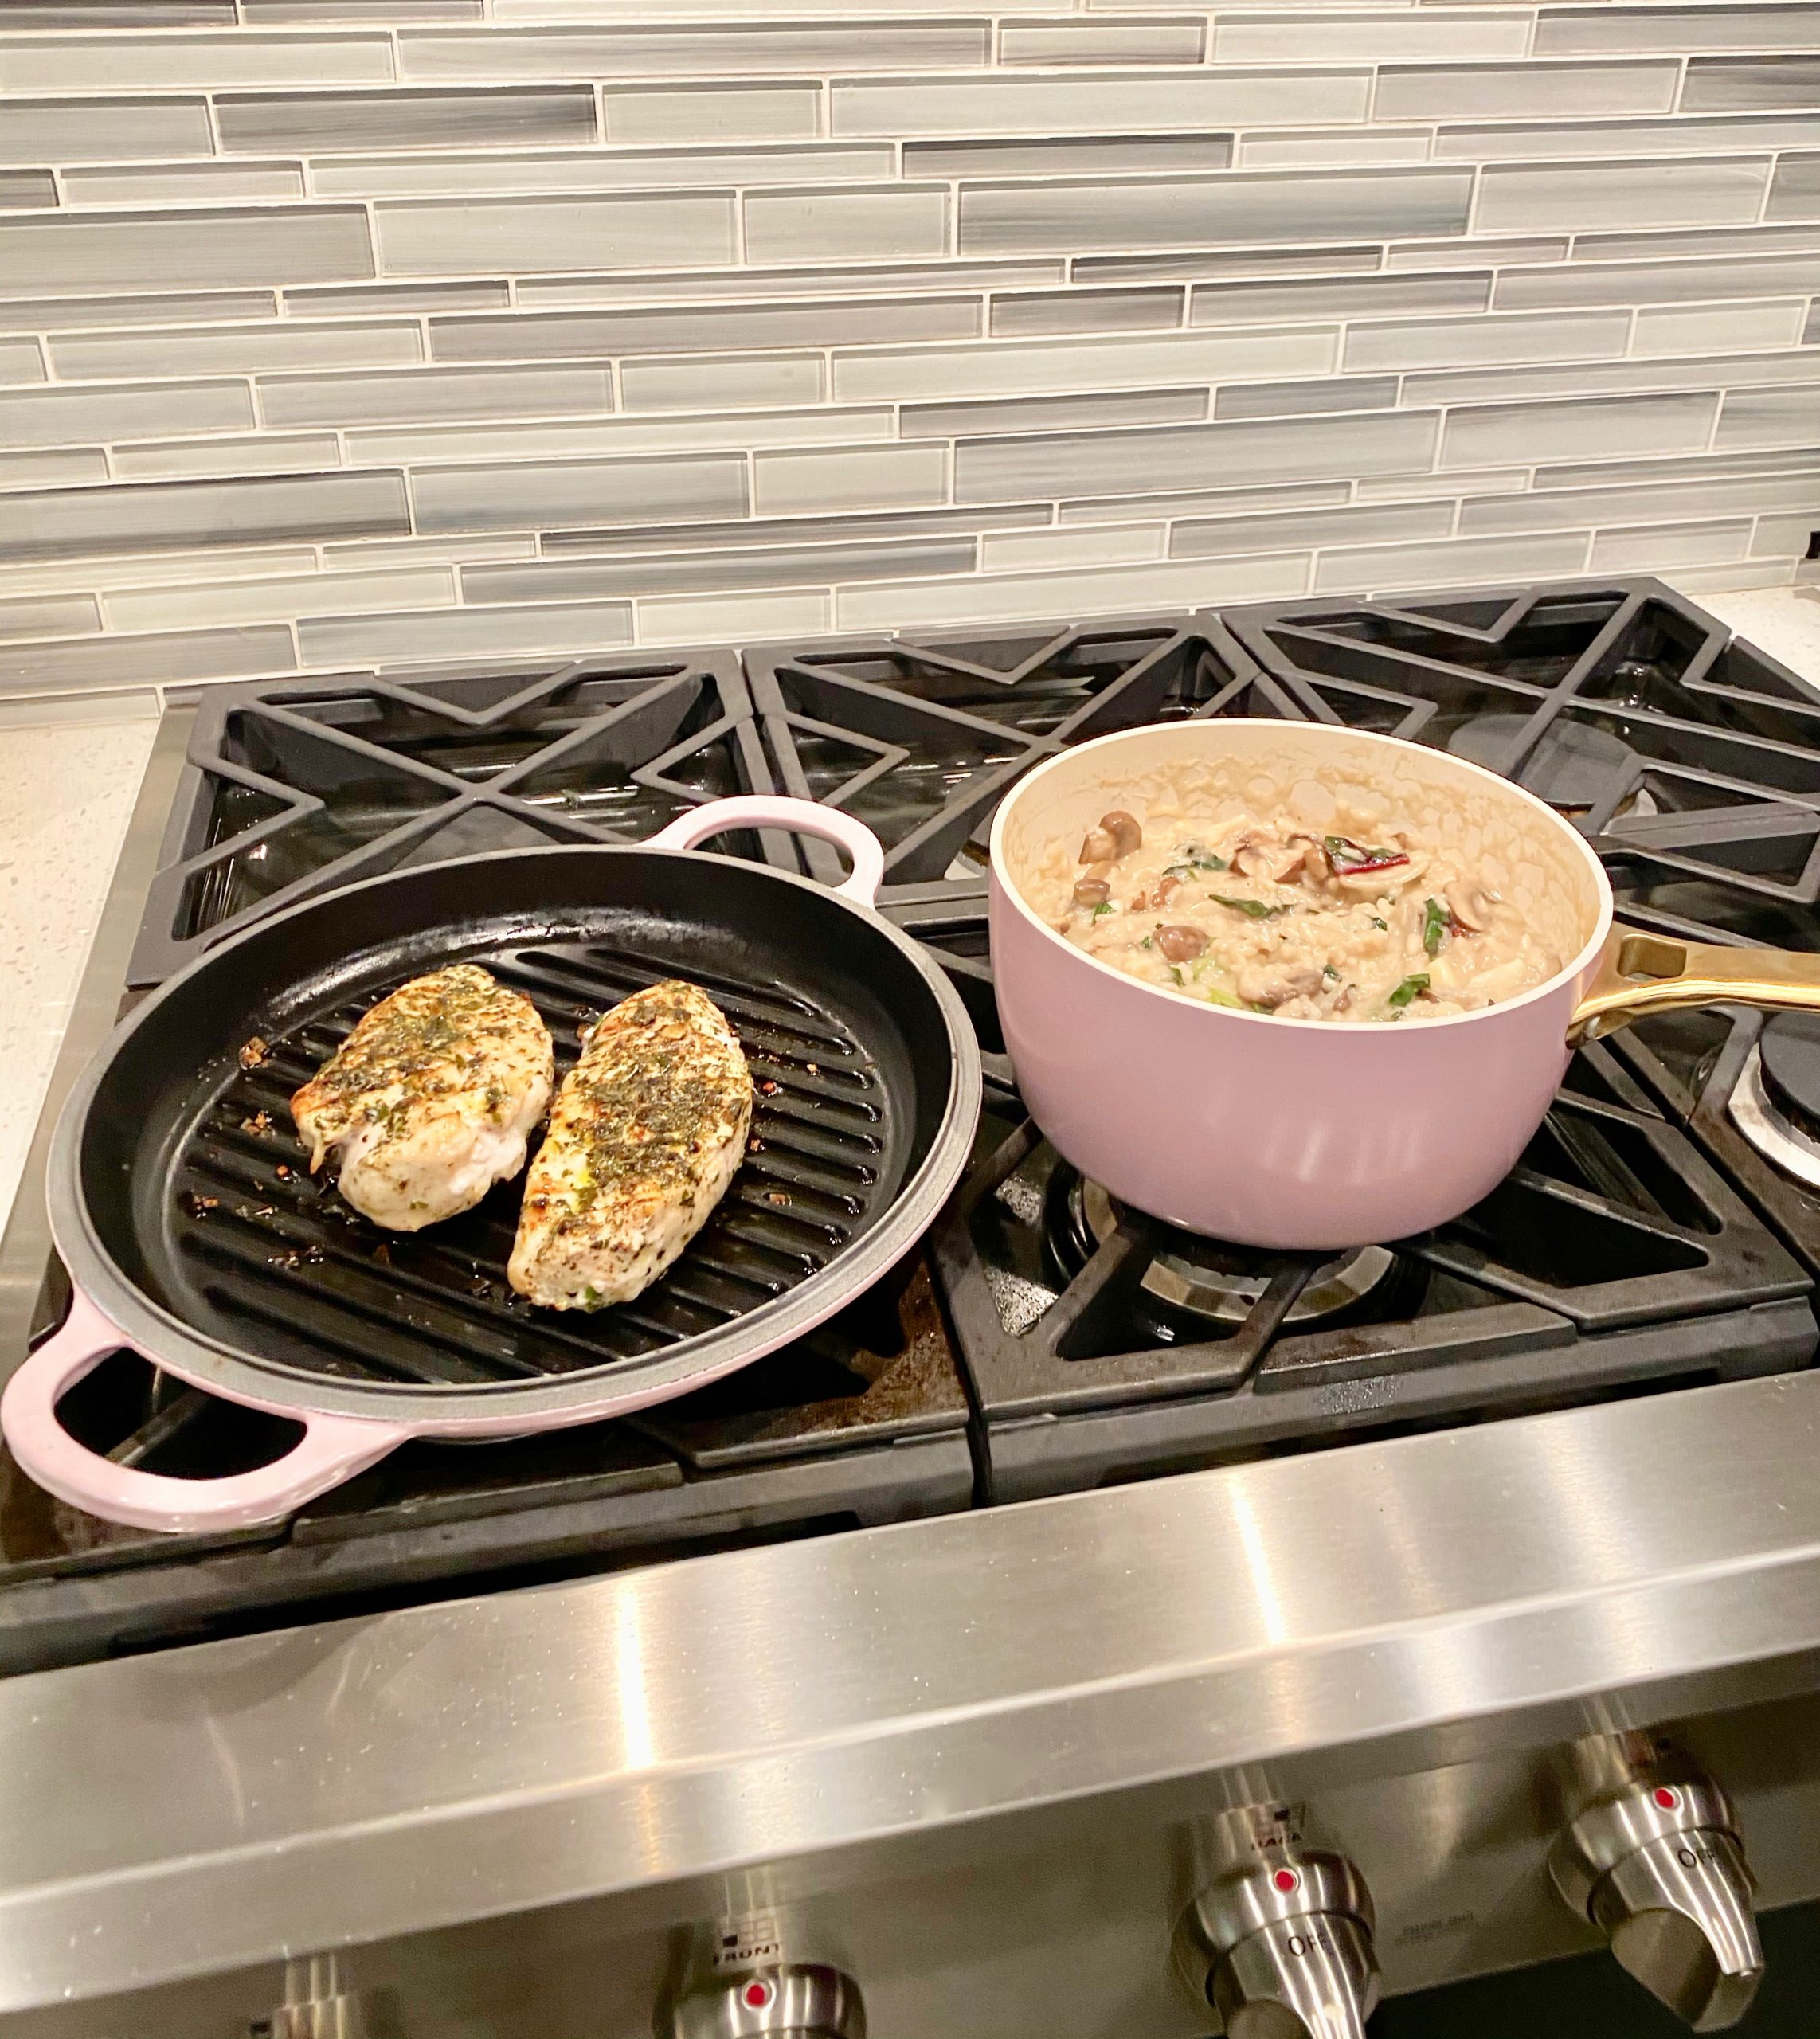 Cooking chicken risotto with my new pink GreenPan.